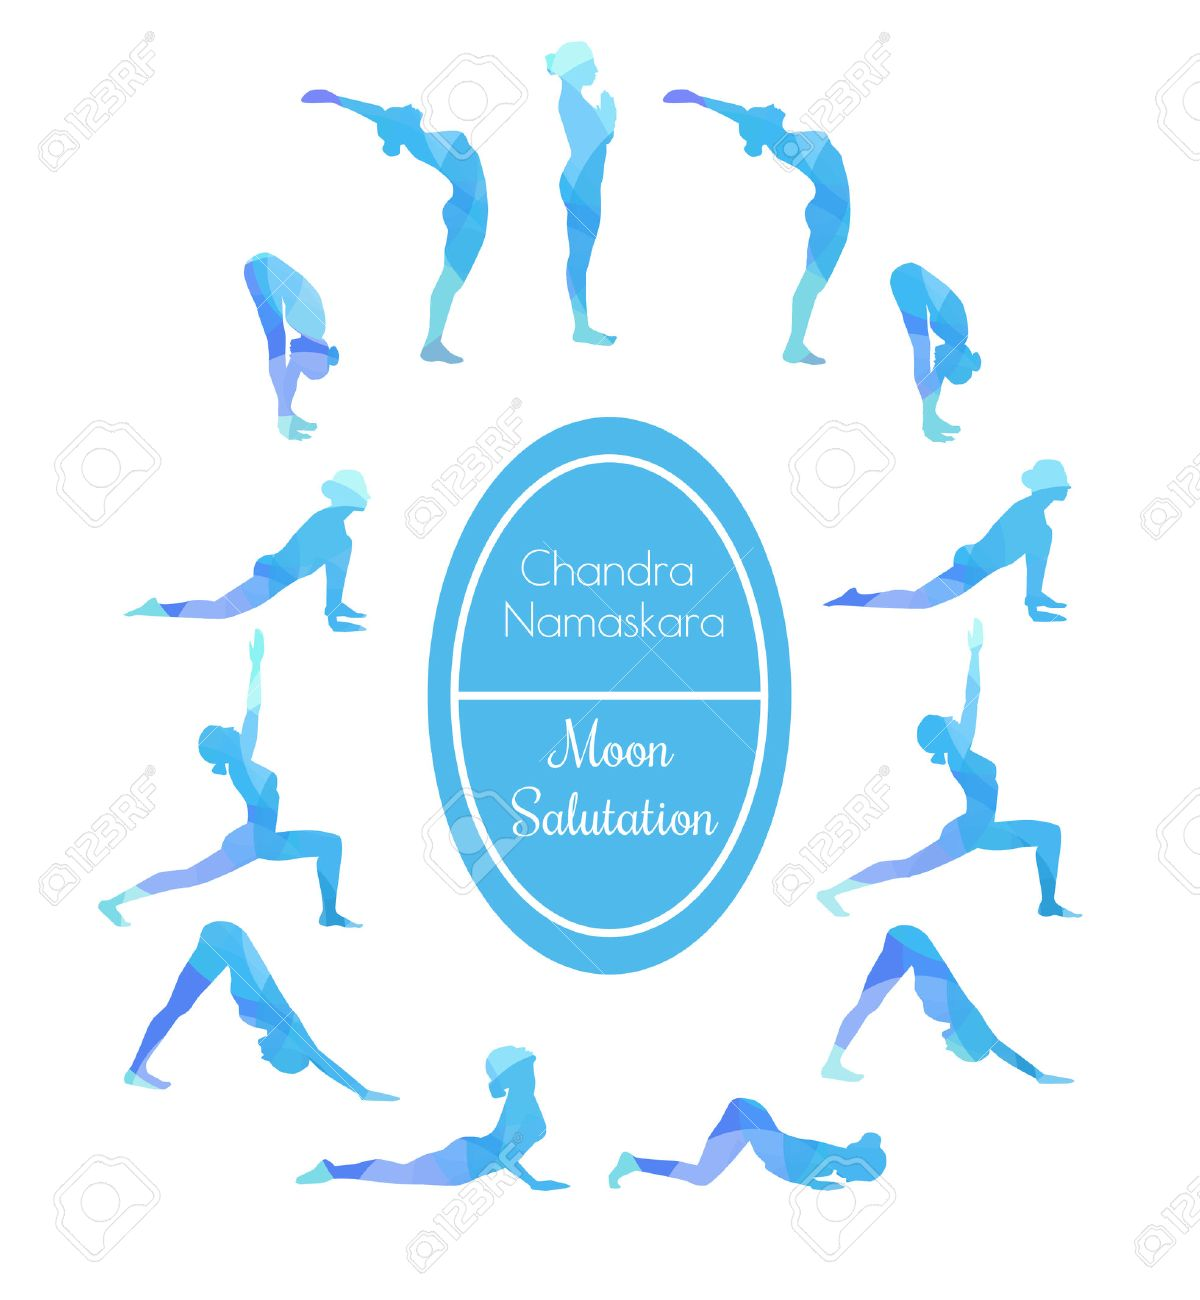 Vector Illustration Of Yoga Exercise Moon Salutation Chandra Royalty Free Cliparts Vectors And Stock Illustration Image 44712579